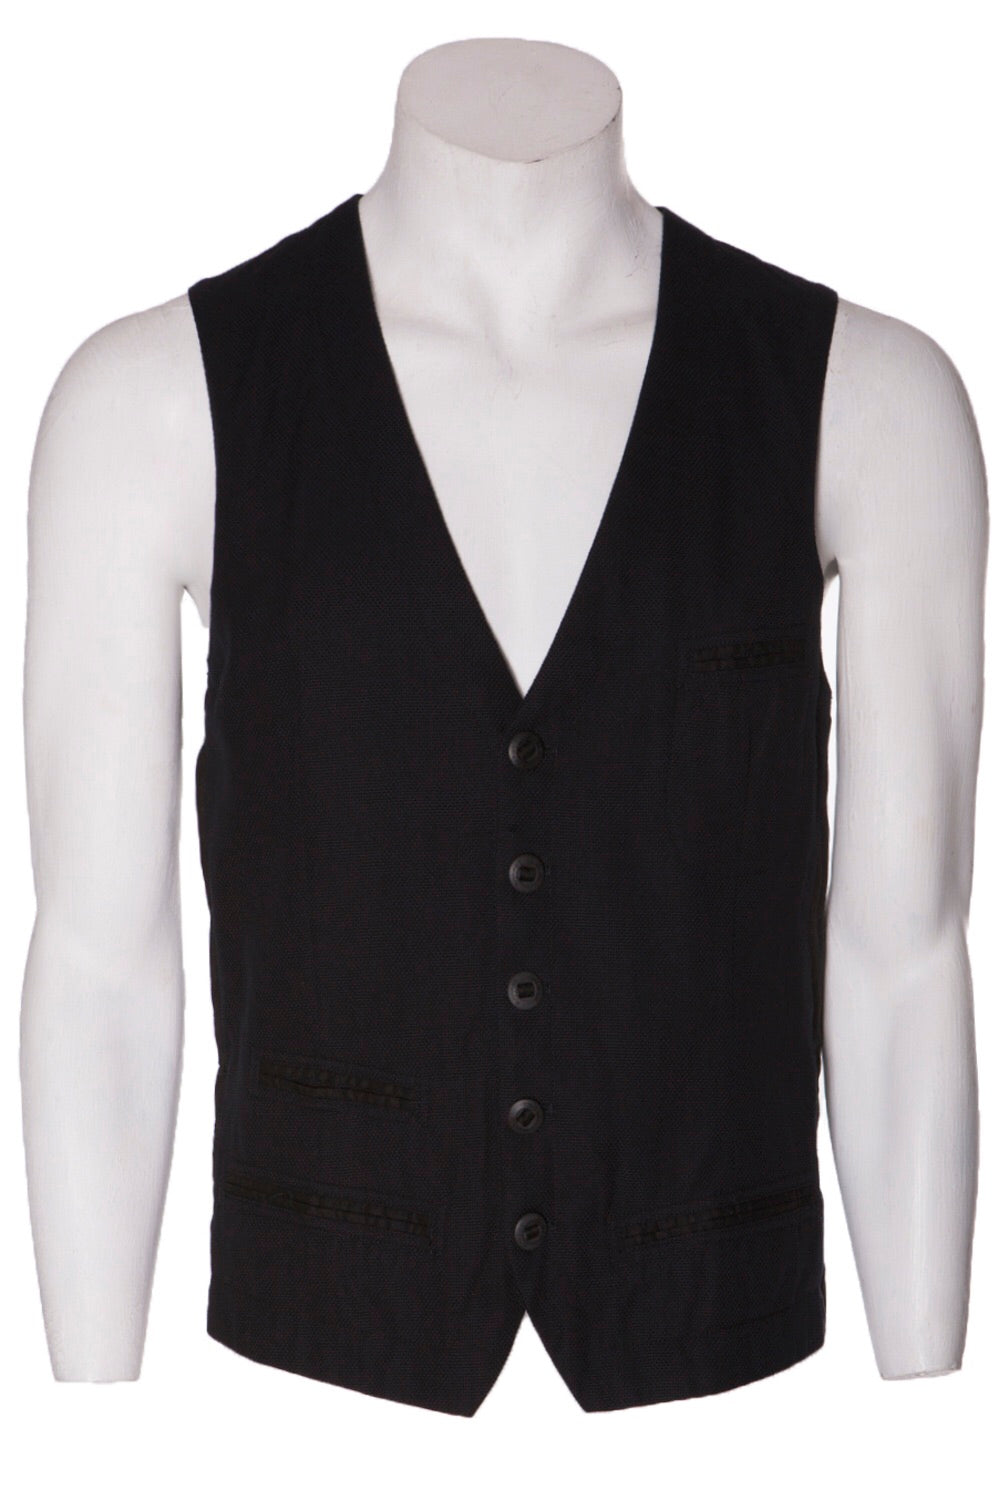 Hannes Roether Navy Waistcoat - LAST ONE!